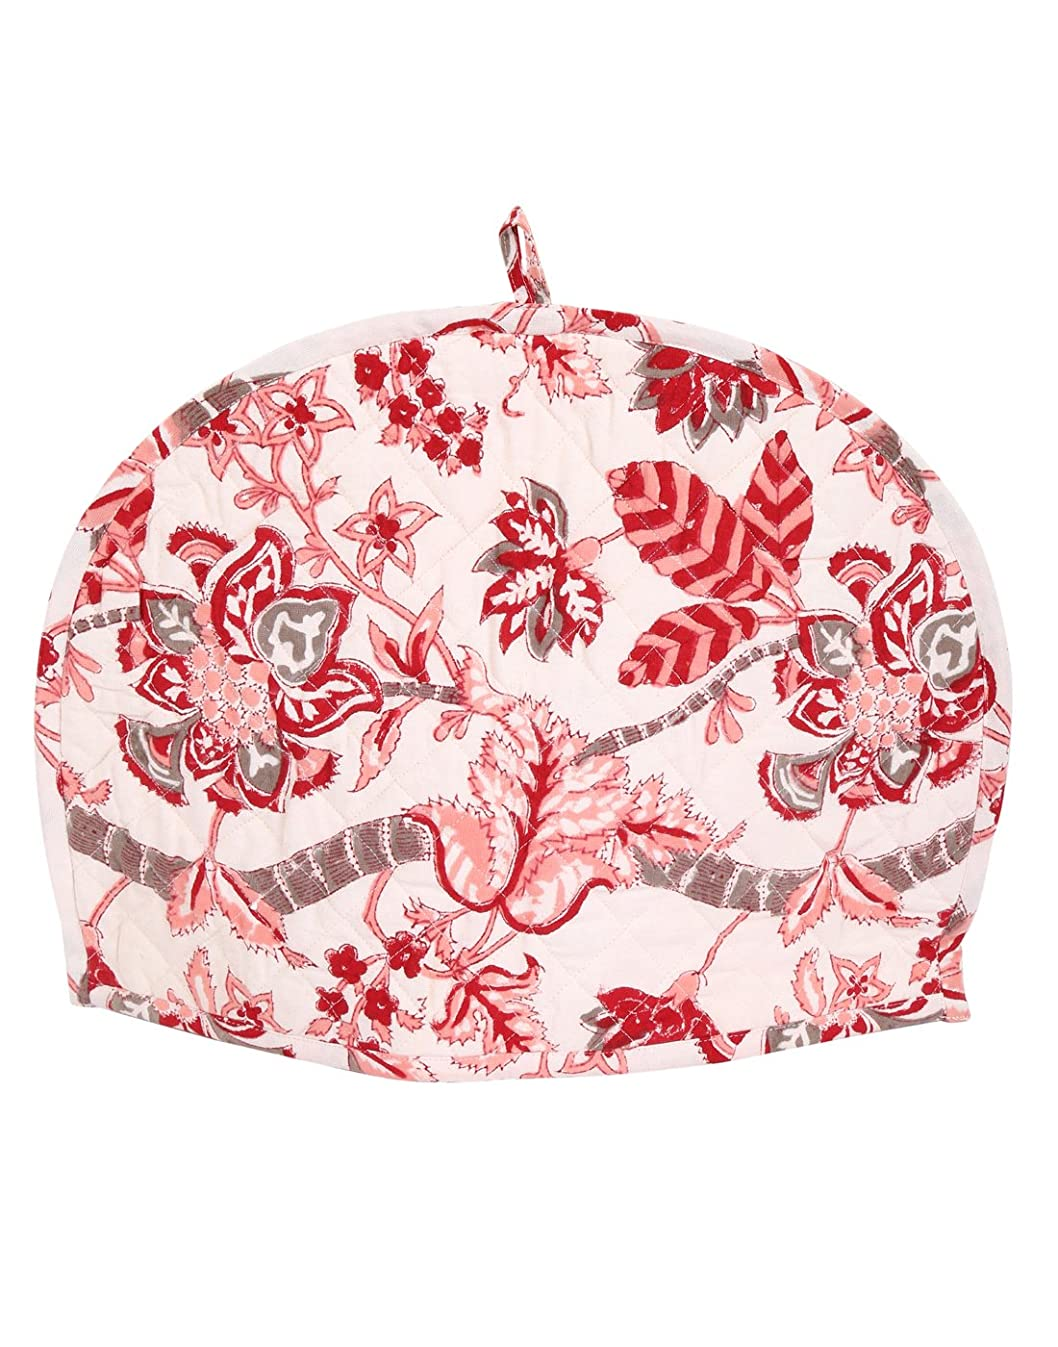 Pure Cotton Restaurant Accessories - Indian Ethnic Tea Cozies Floral Hand Block Printed Kettle Cover - Cute Pink and Off-White - 14x11 Inches